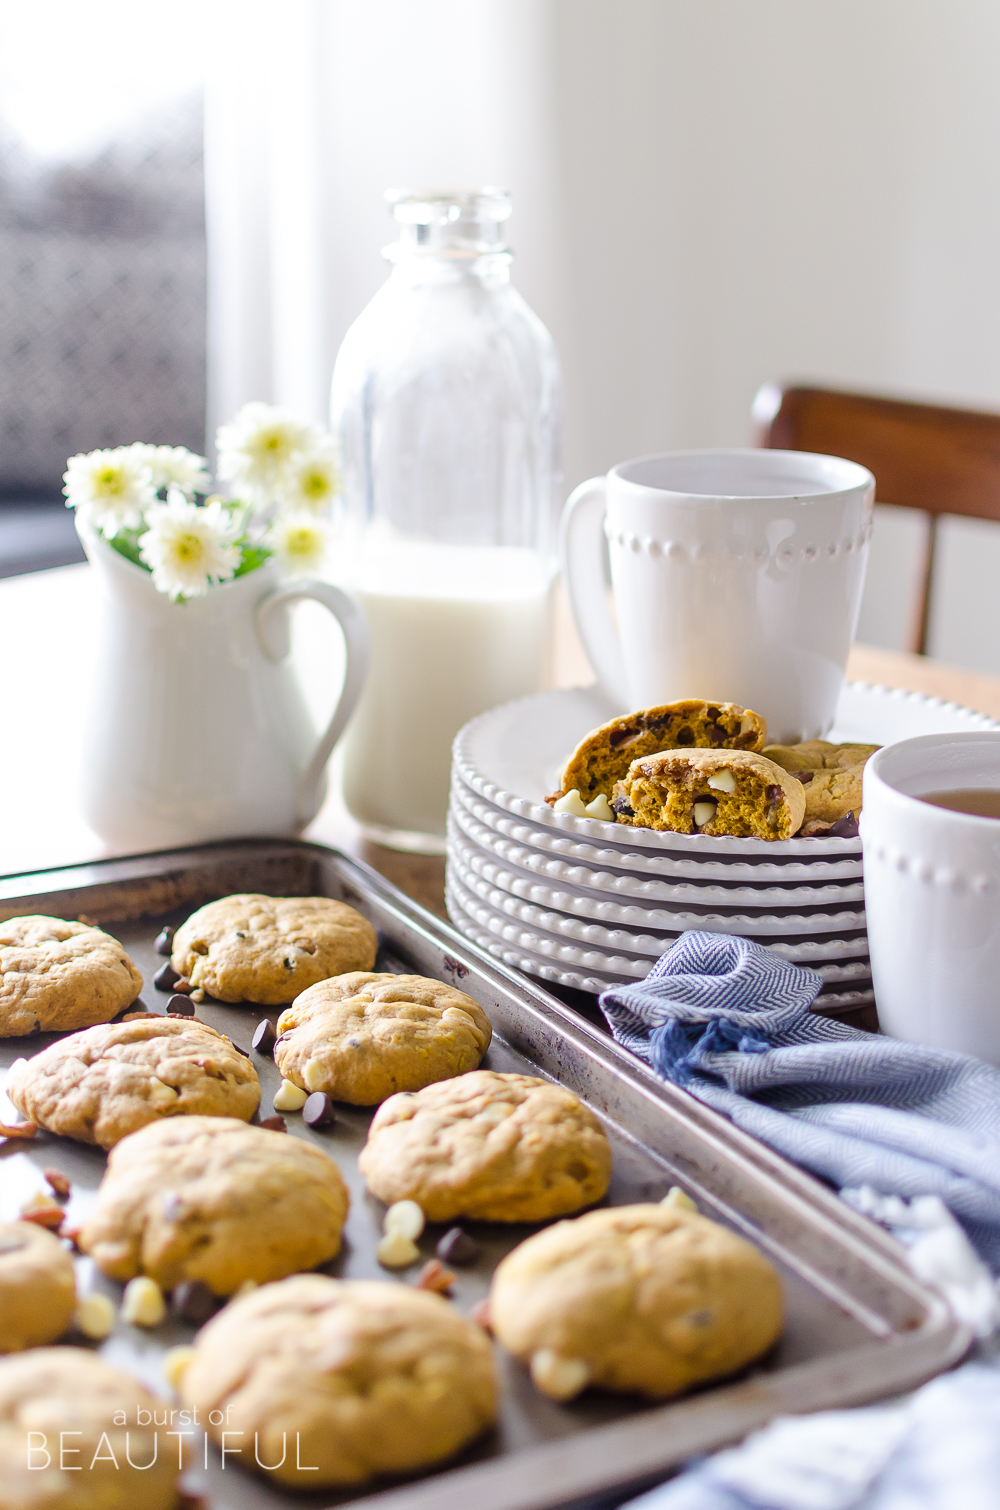 Plan your fall baking with these Pumpkin Pecan Chocolate Chip Cookies and 15+ pumpkin recipes